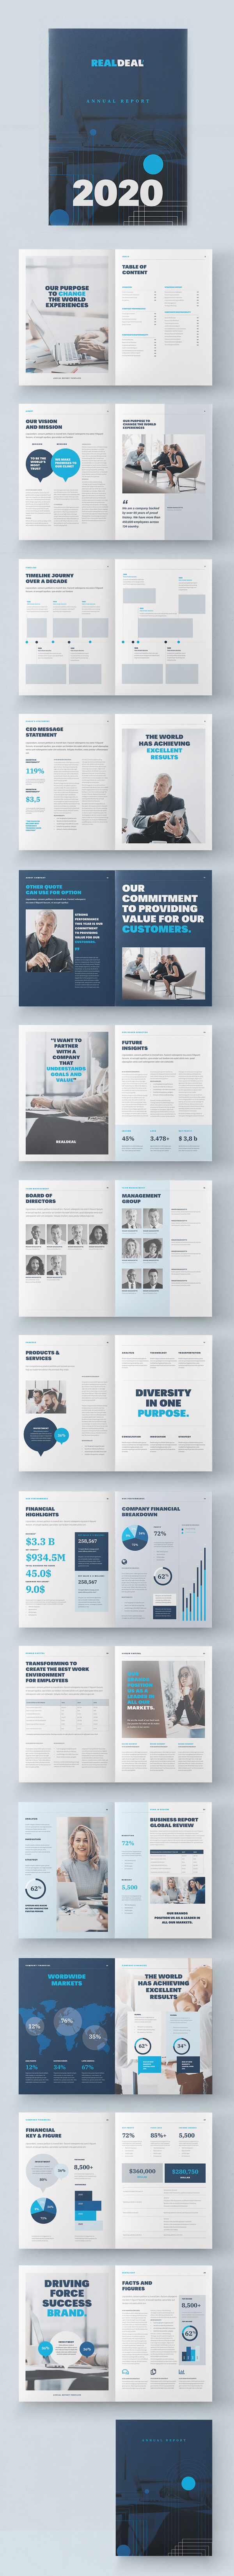 Corporate Blue Annual Report Template